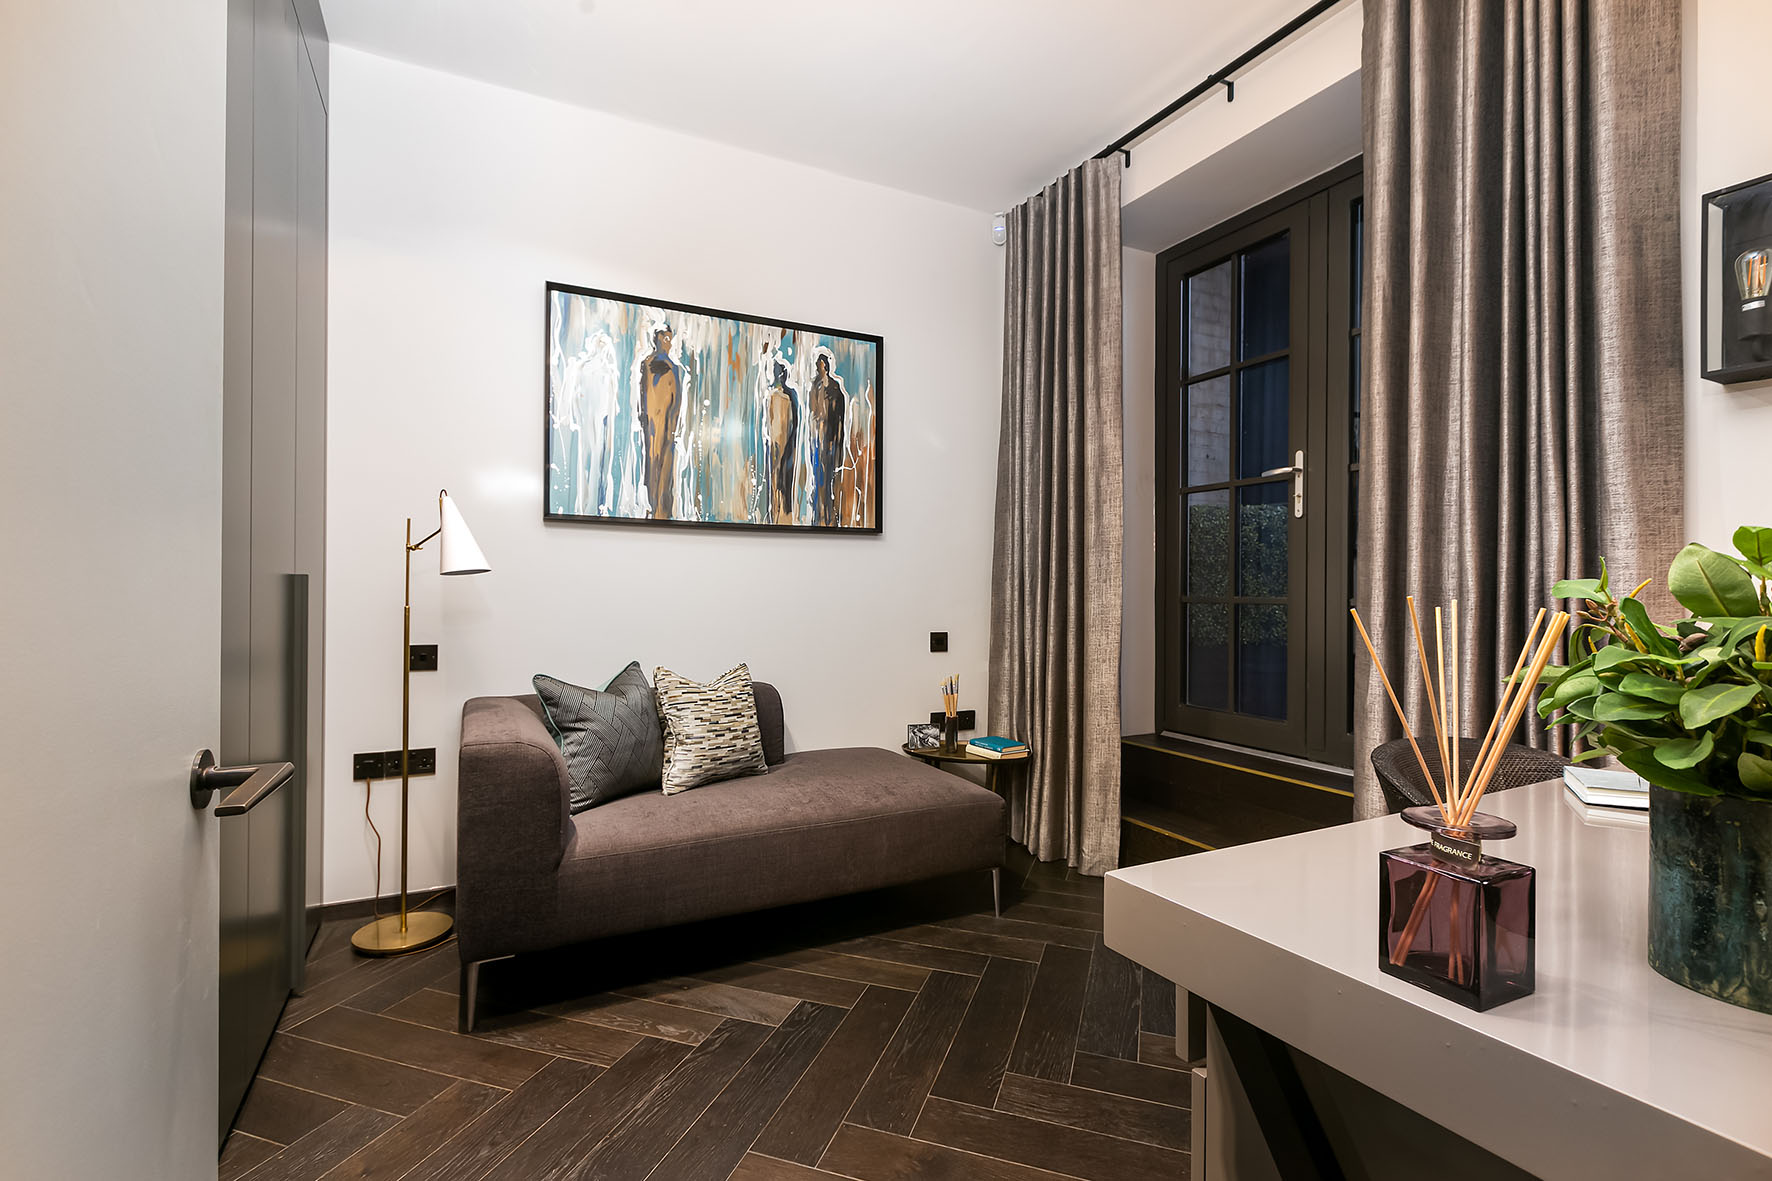 Lovelydays luxury service apartment rental - London - Soho - Berwick Street I - Lovelysuite - 3 bedrooms - 3 bathrooms - Double bed - c458a497bc45 - Lovelydays